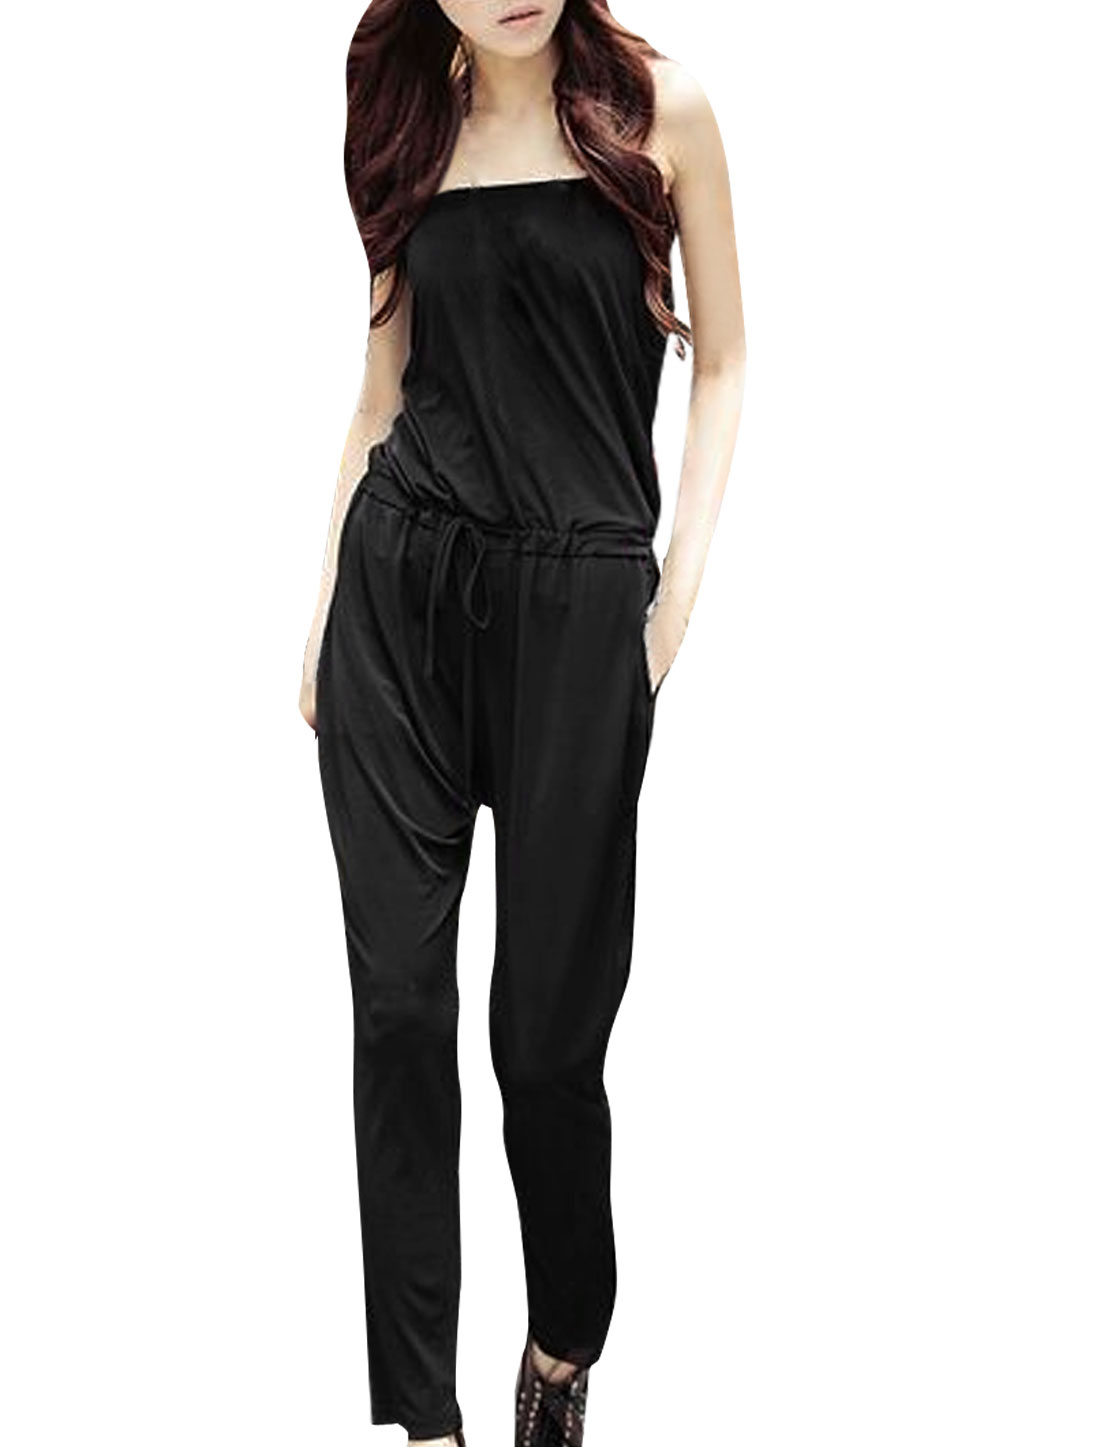 Strapless Casual Stretchy Waist Summer Jumpsuit for Women Black L